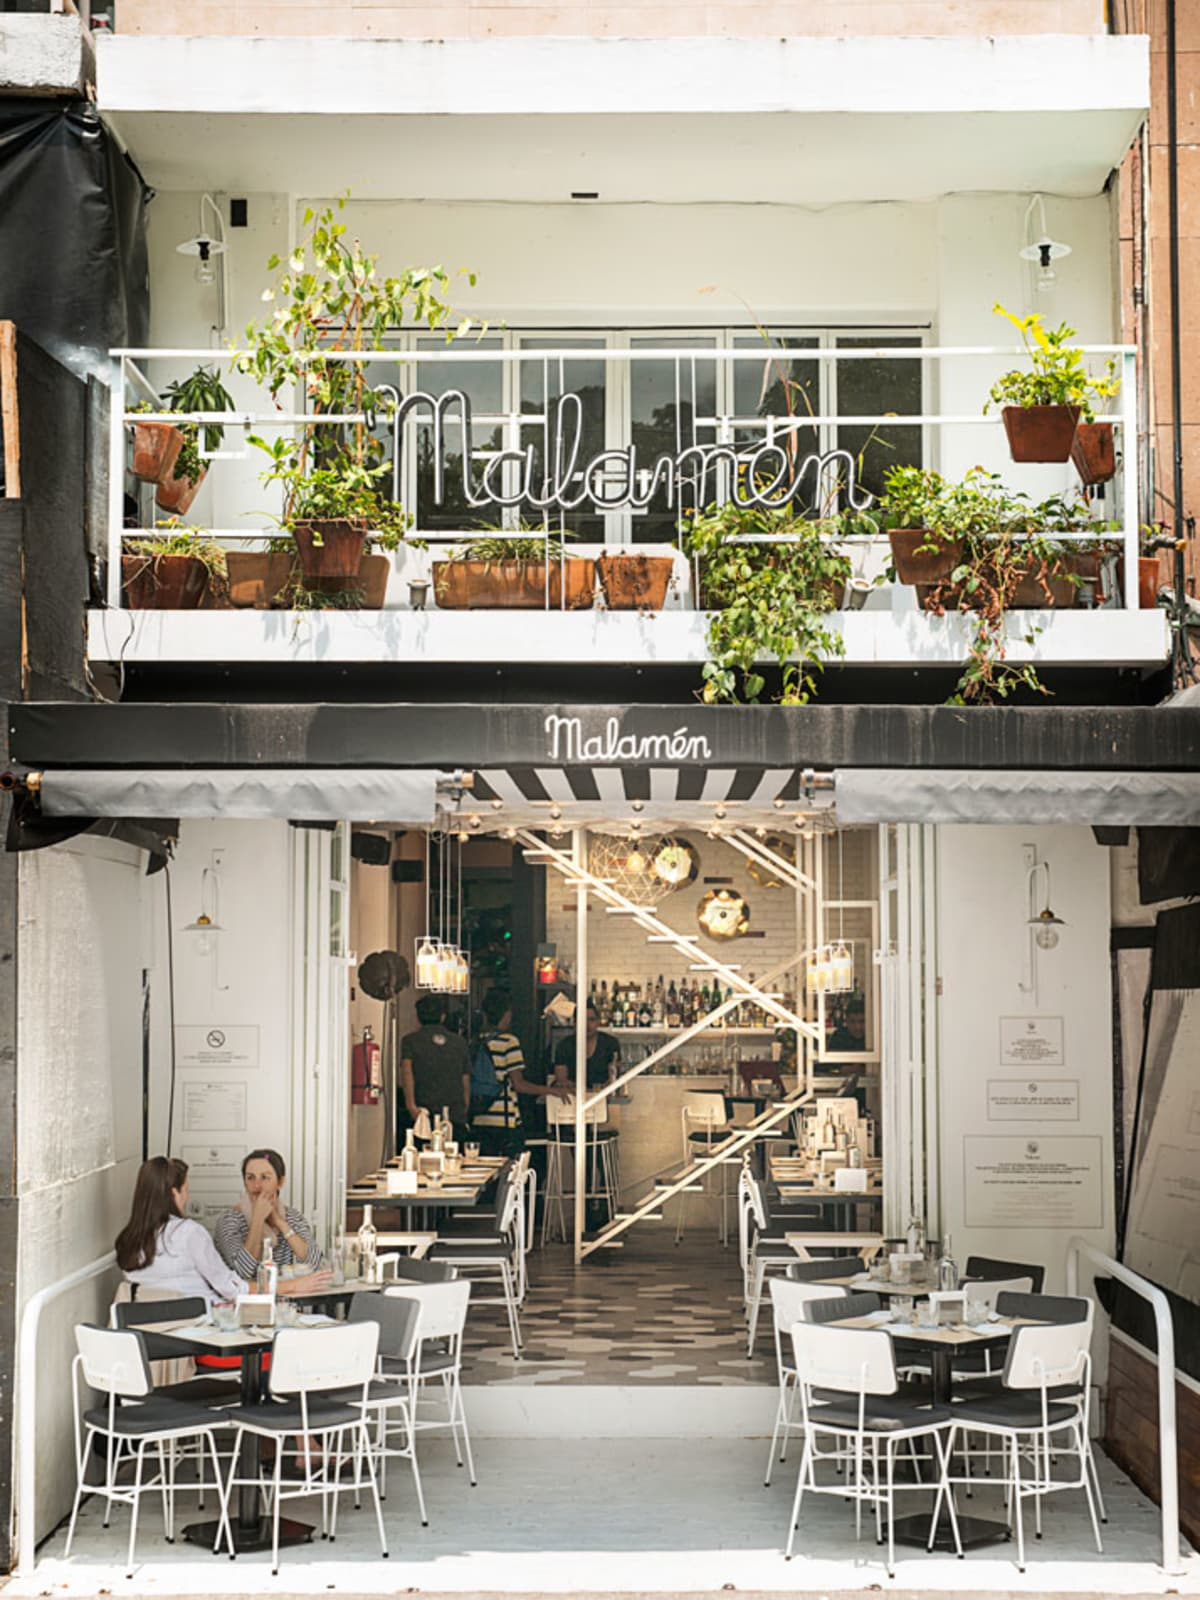 News, Shelby, Polanco in Mexico City, July 2015, Malamen Restaurant